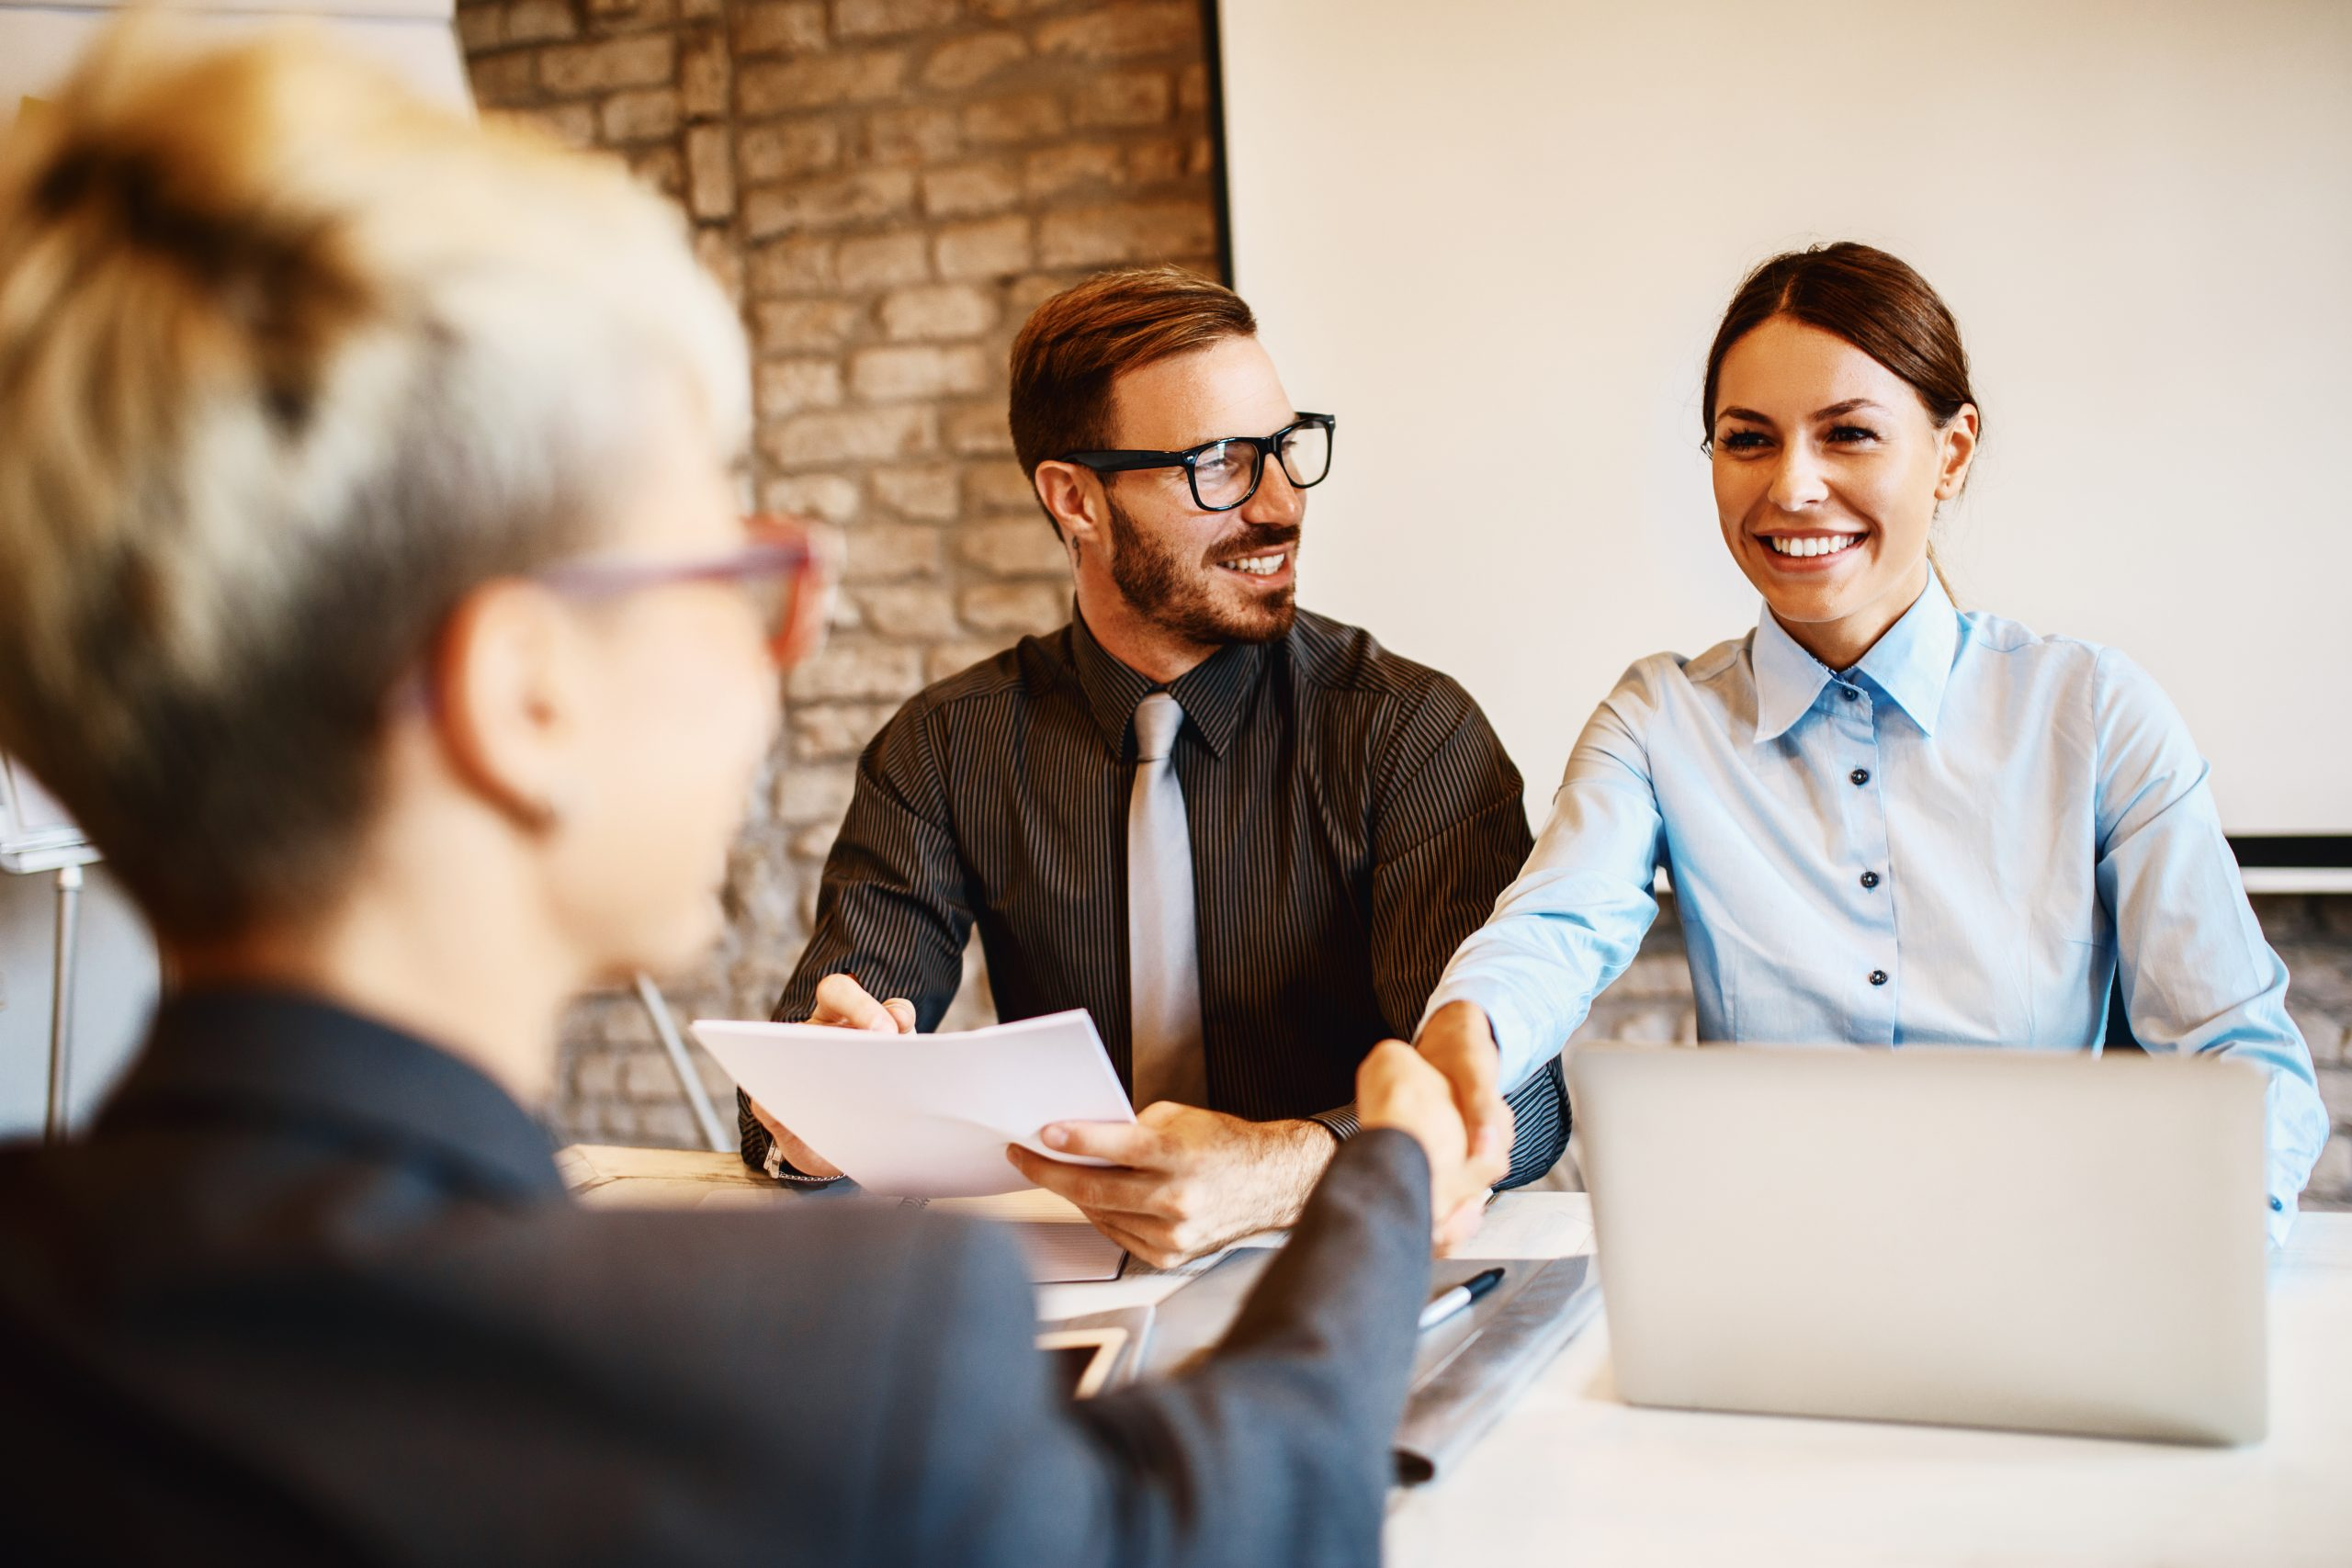 Job Interview Tip 6: How to Make a Great Impression